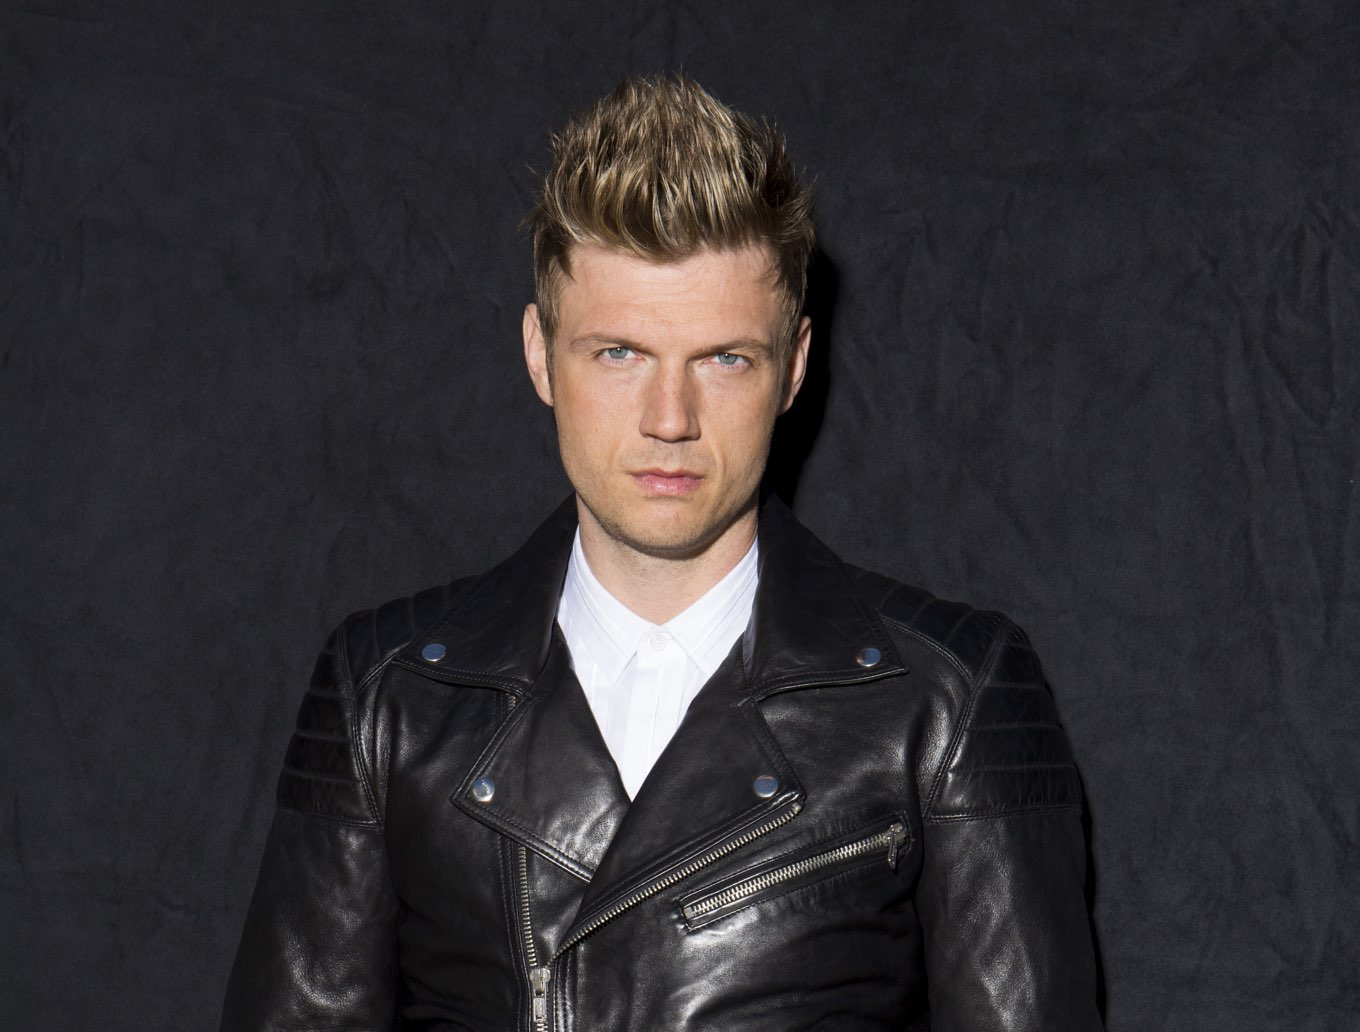 Nick Carter Answers Fan Questions & Says New BSB Record is His 2016 Goal